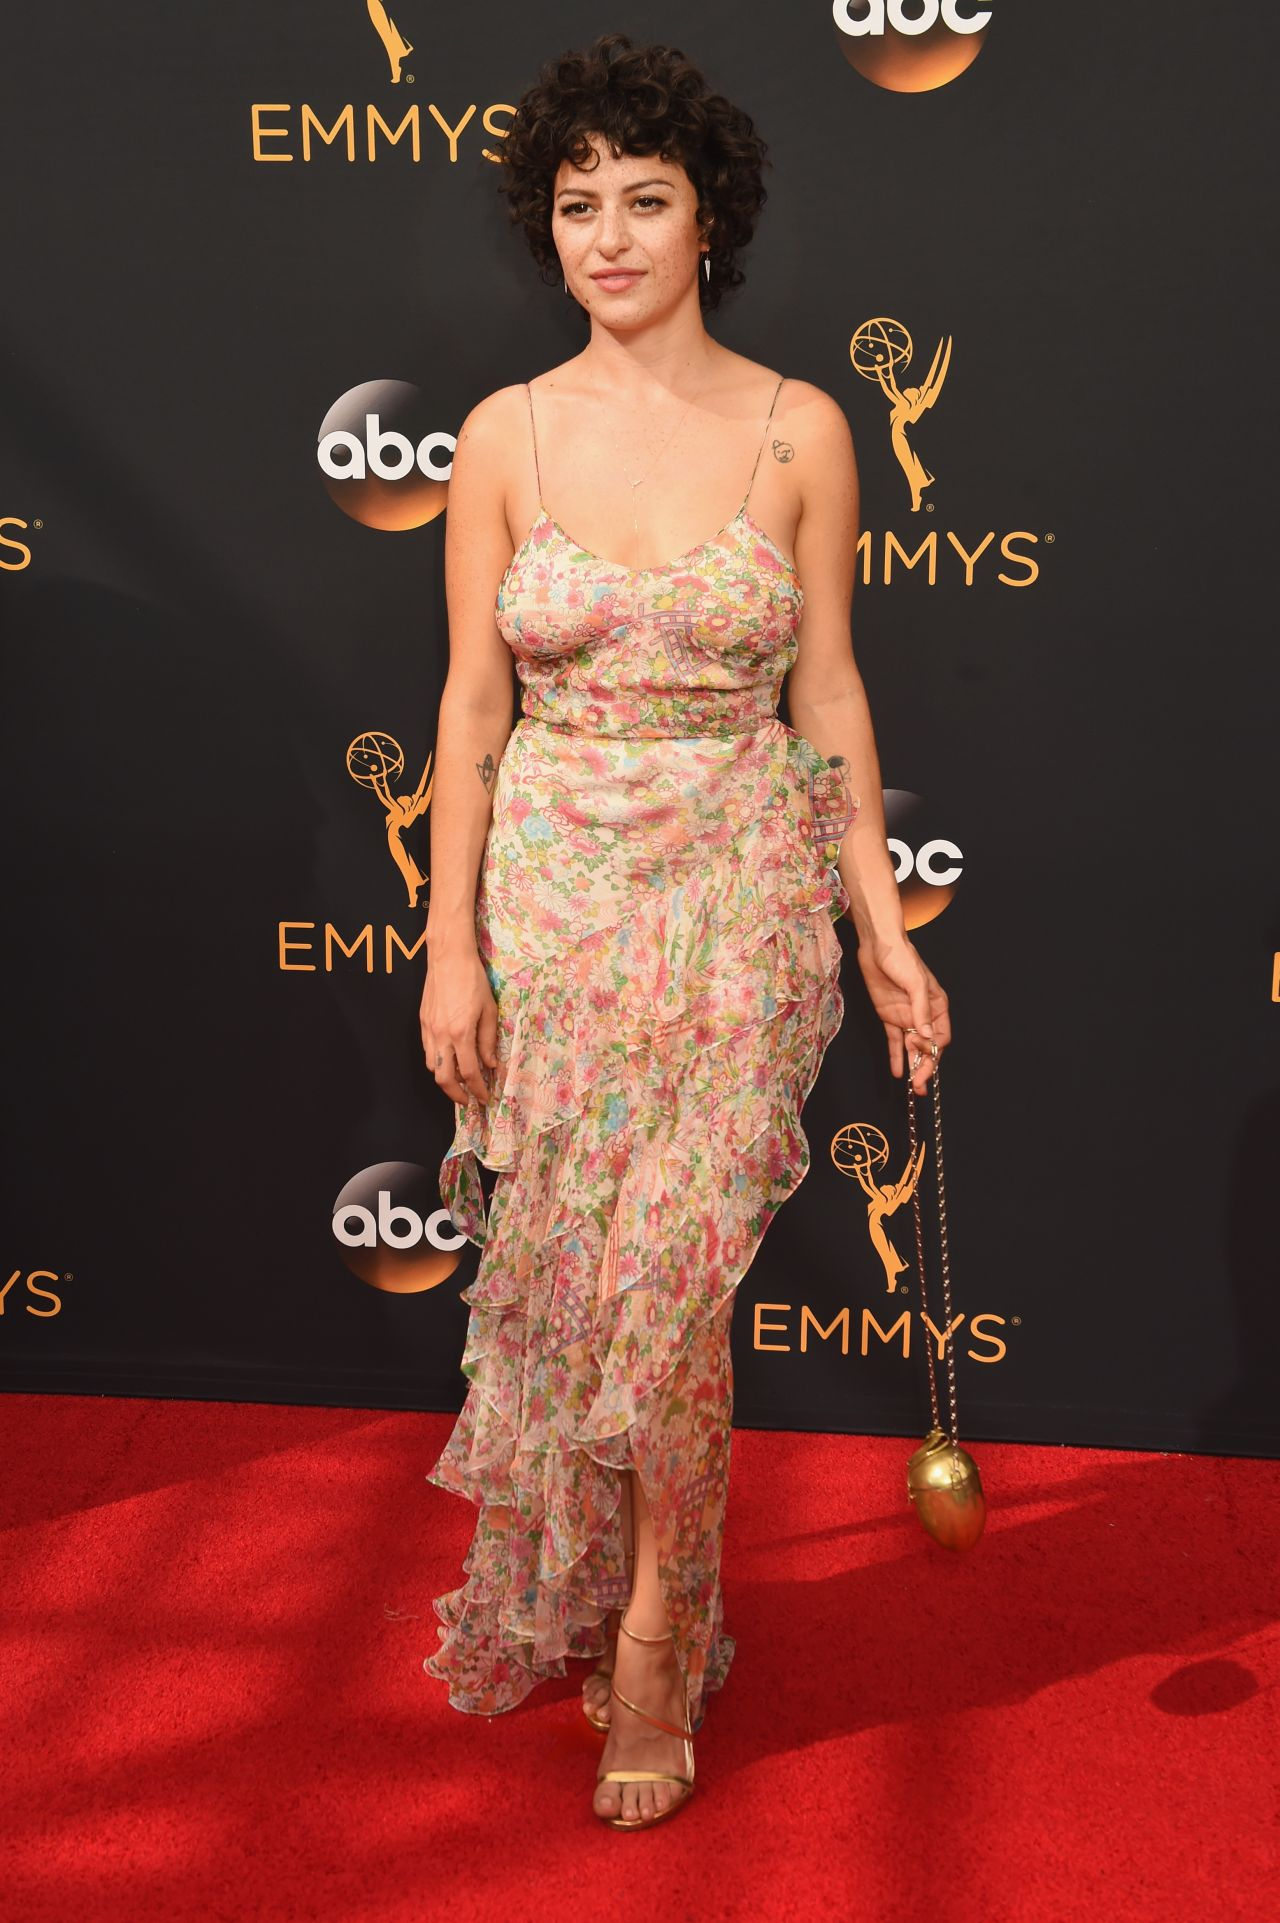 Alia Shawkat Primetime Emmy Awards In Los Angeles 09 18 2016